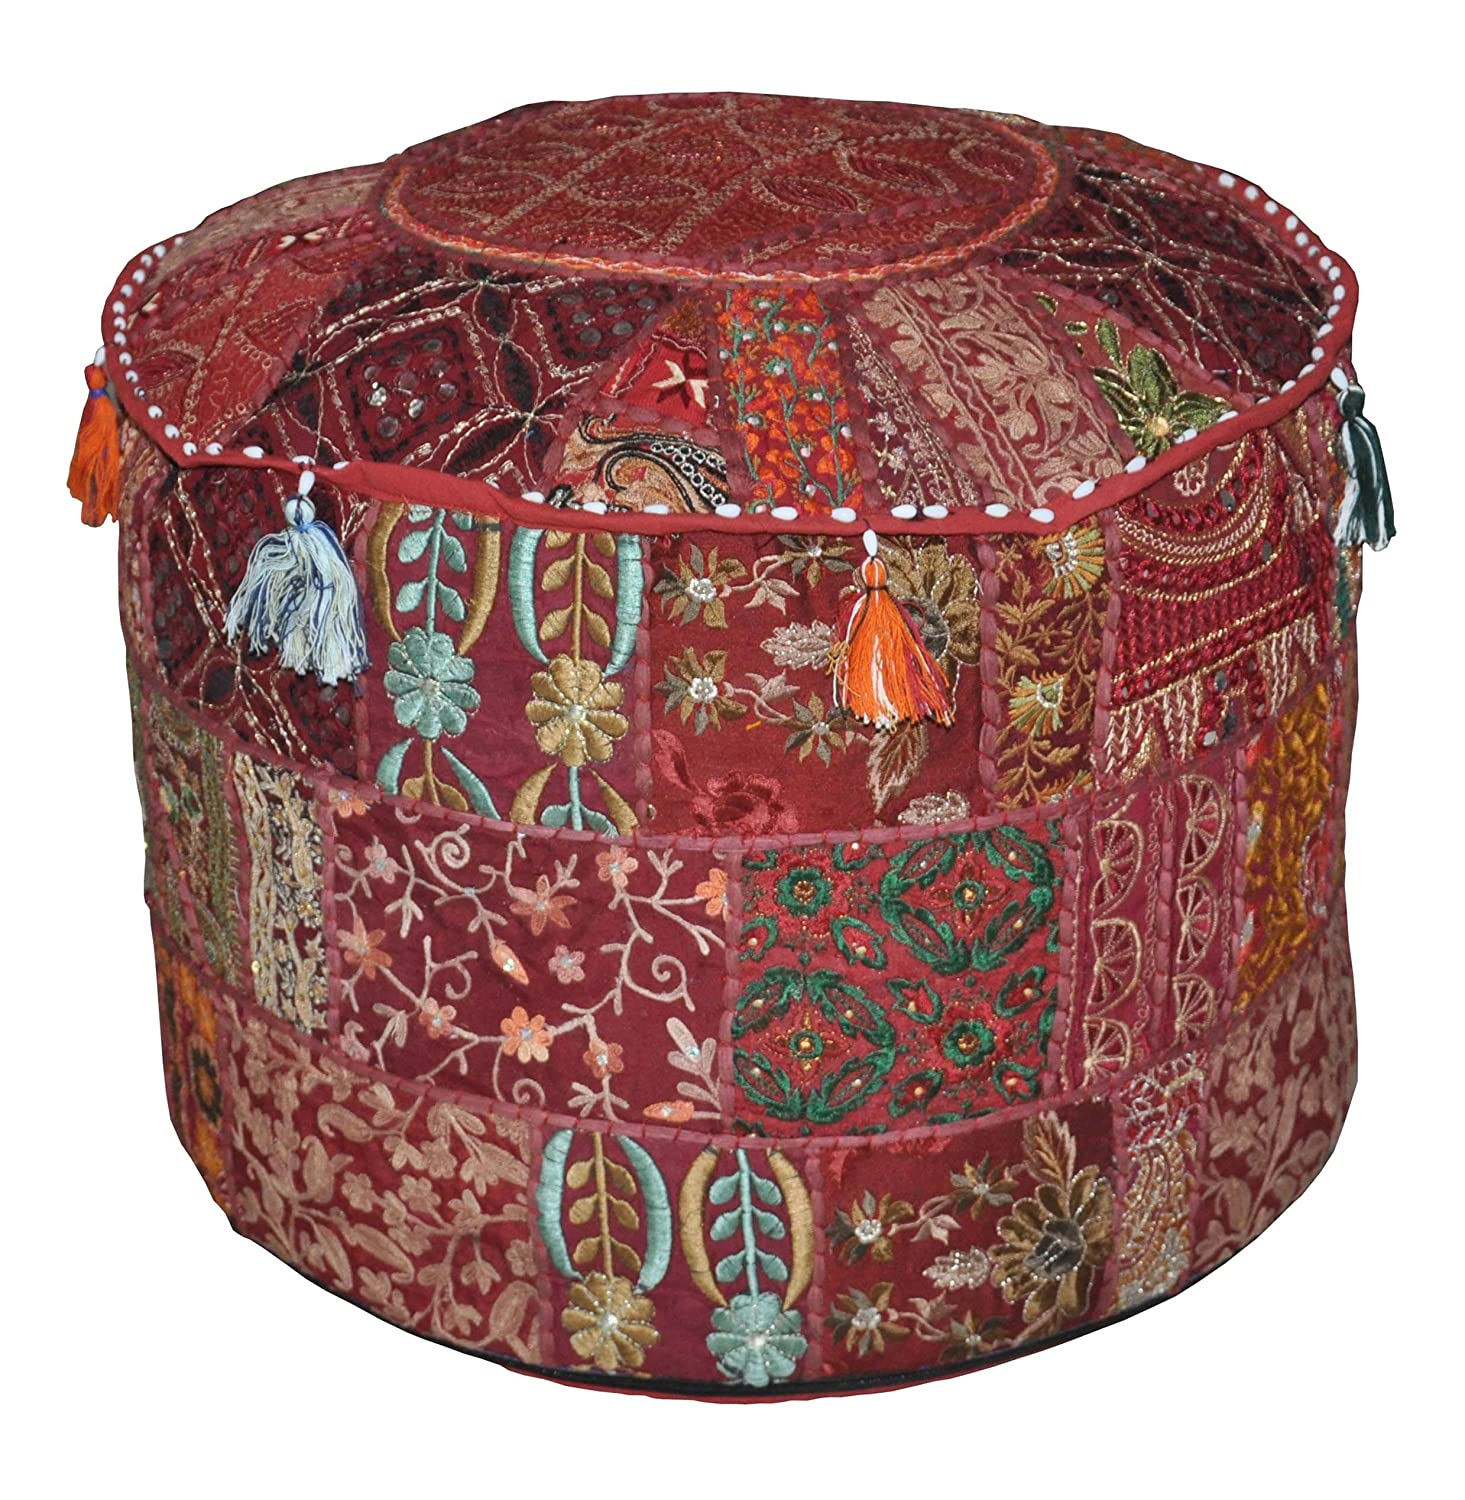 Rajasthali Indian Vintage Ottoman Embellished With Embroidery & Patchwork Foot Stool Floor Cushion, 46 X 33 Cm OTM10159